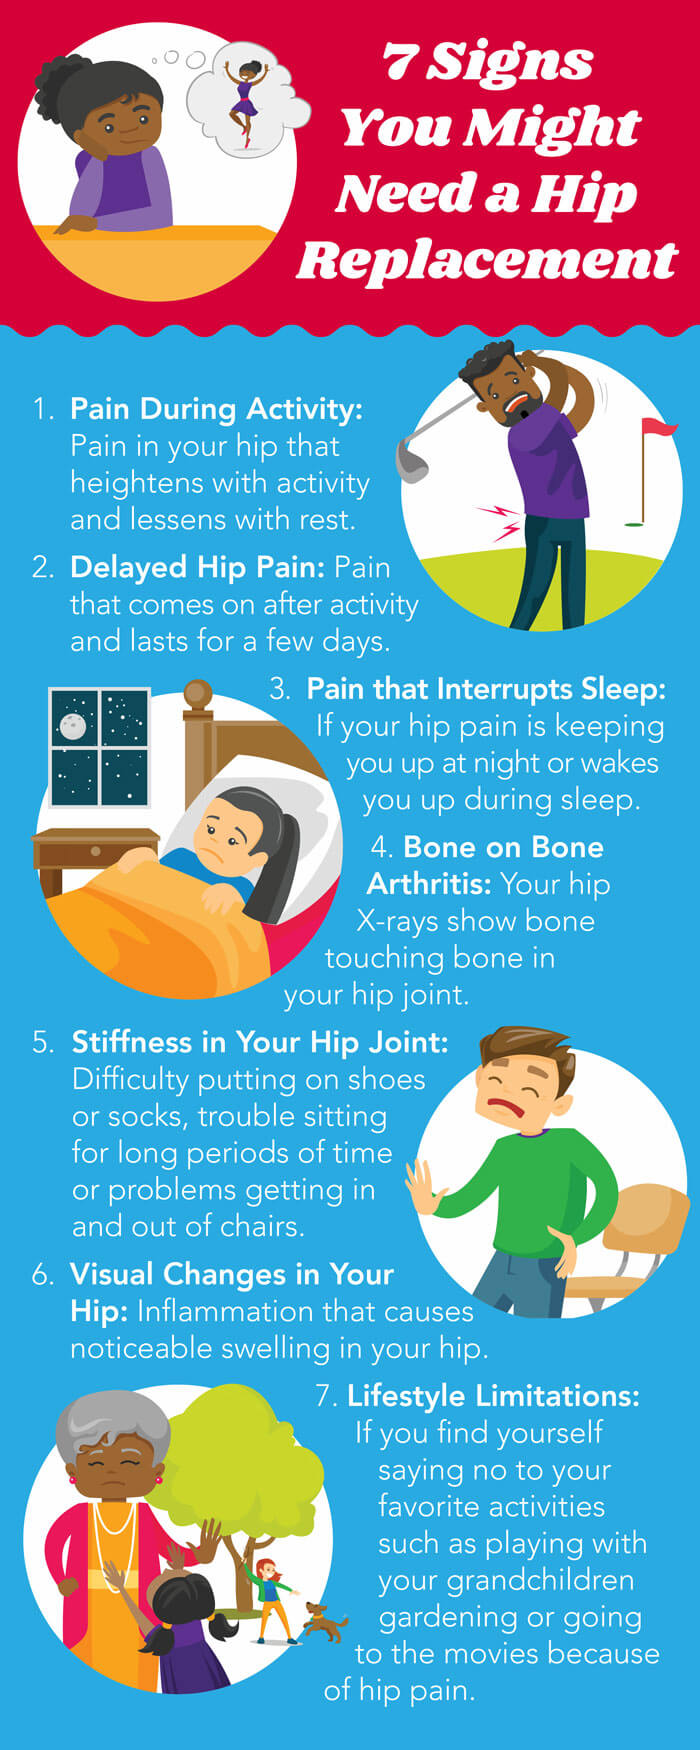 Signs you need a hip replacement